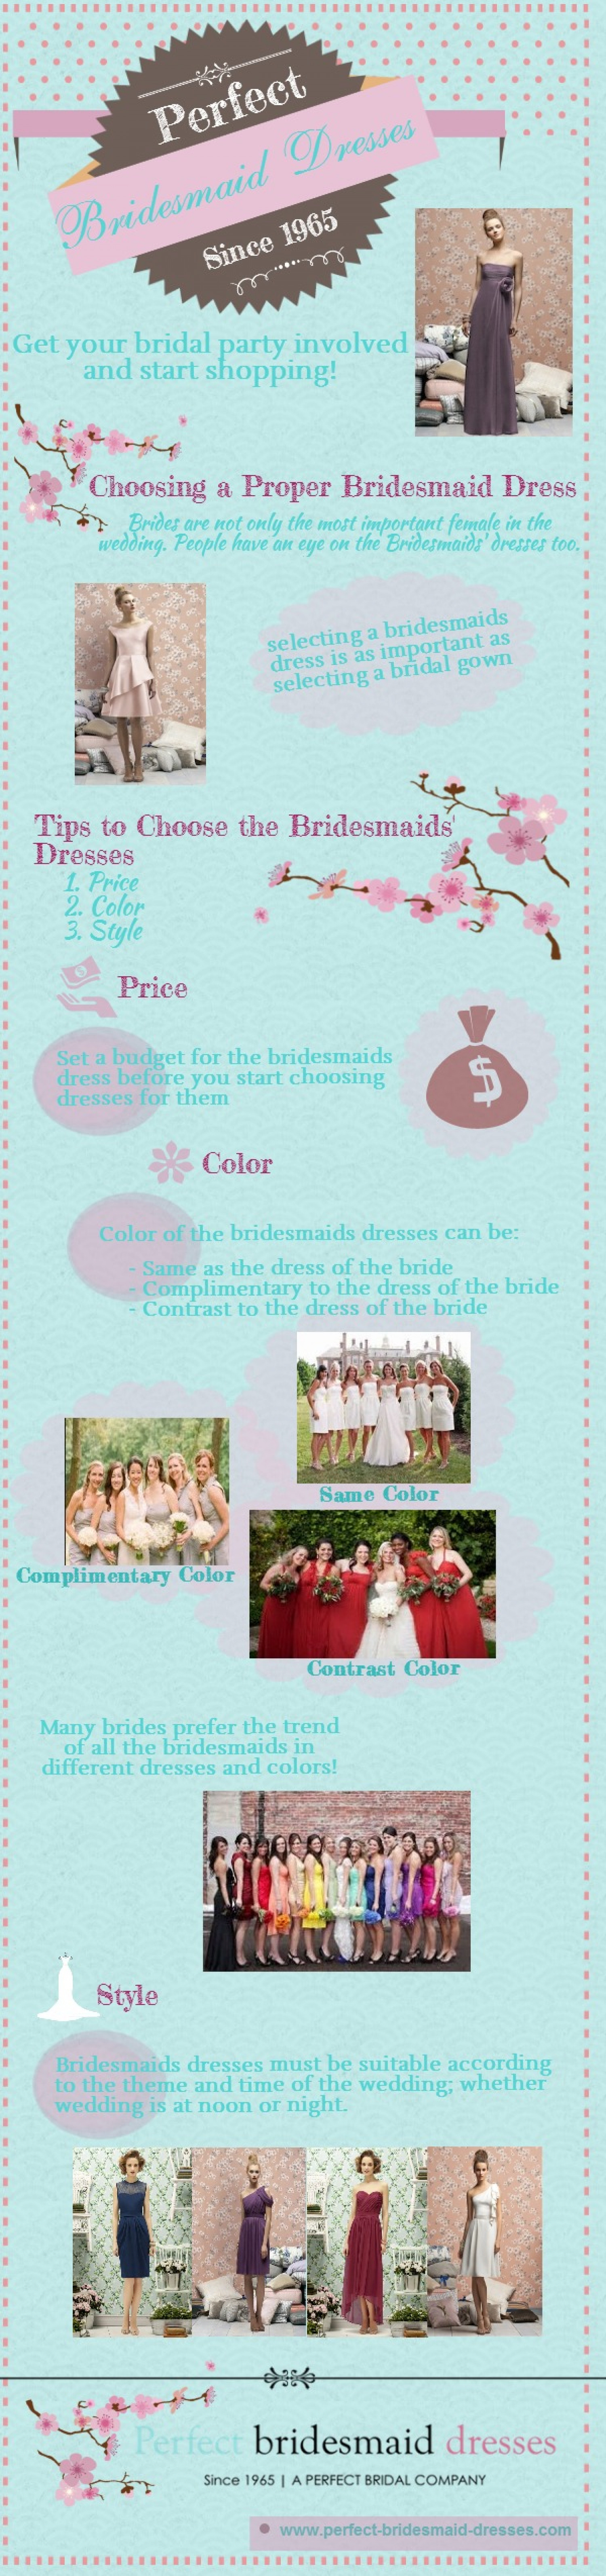 Perfect Bridal Dresses Infographic